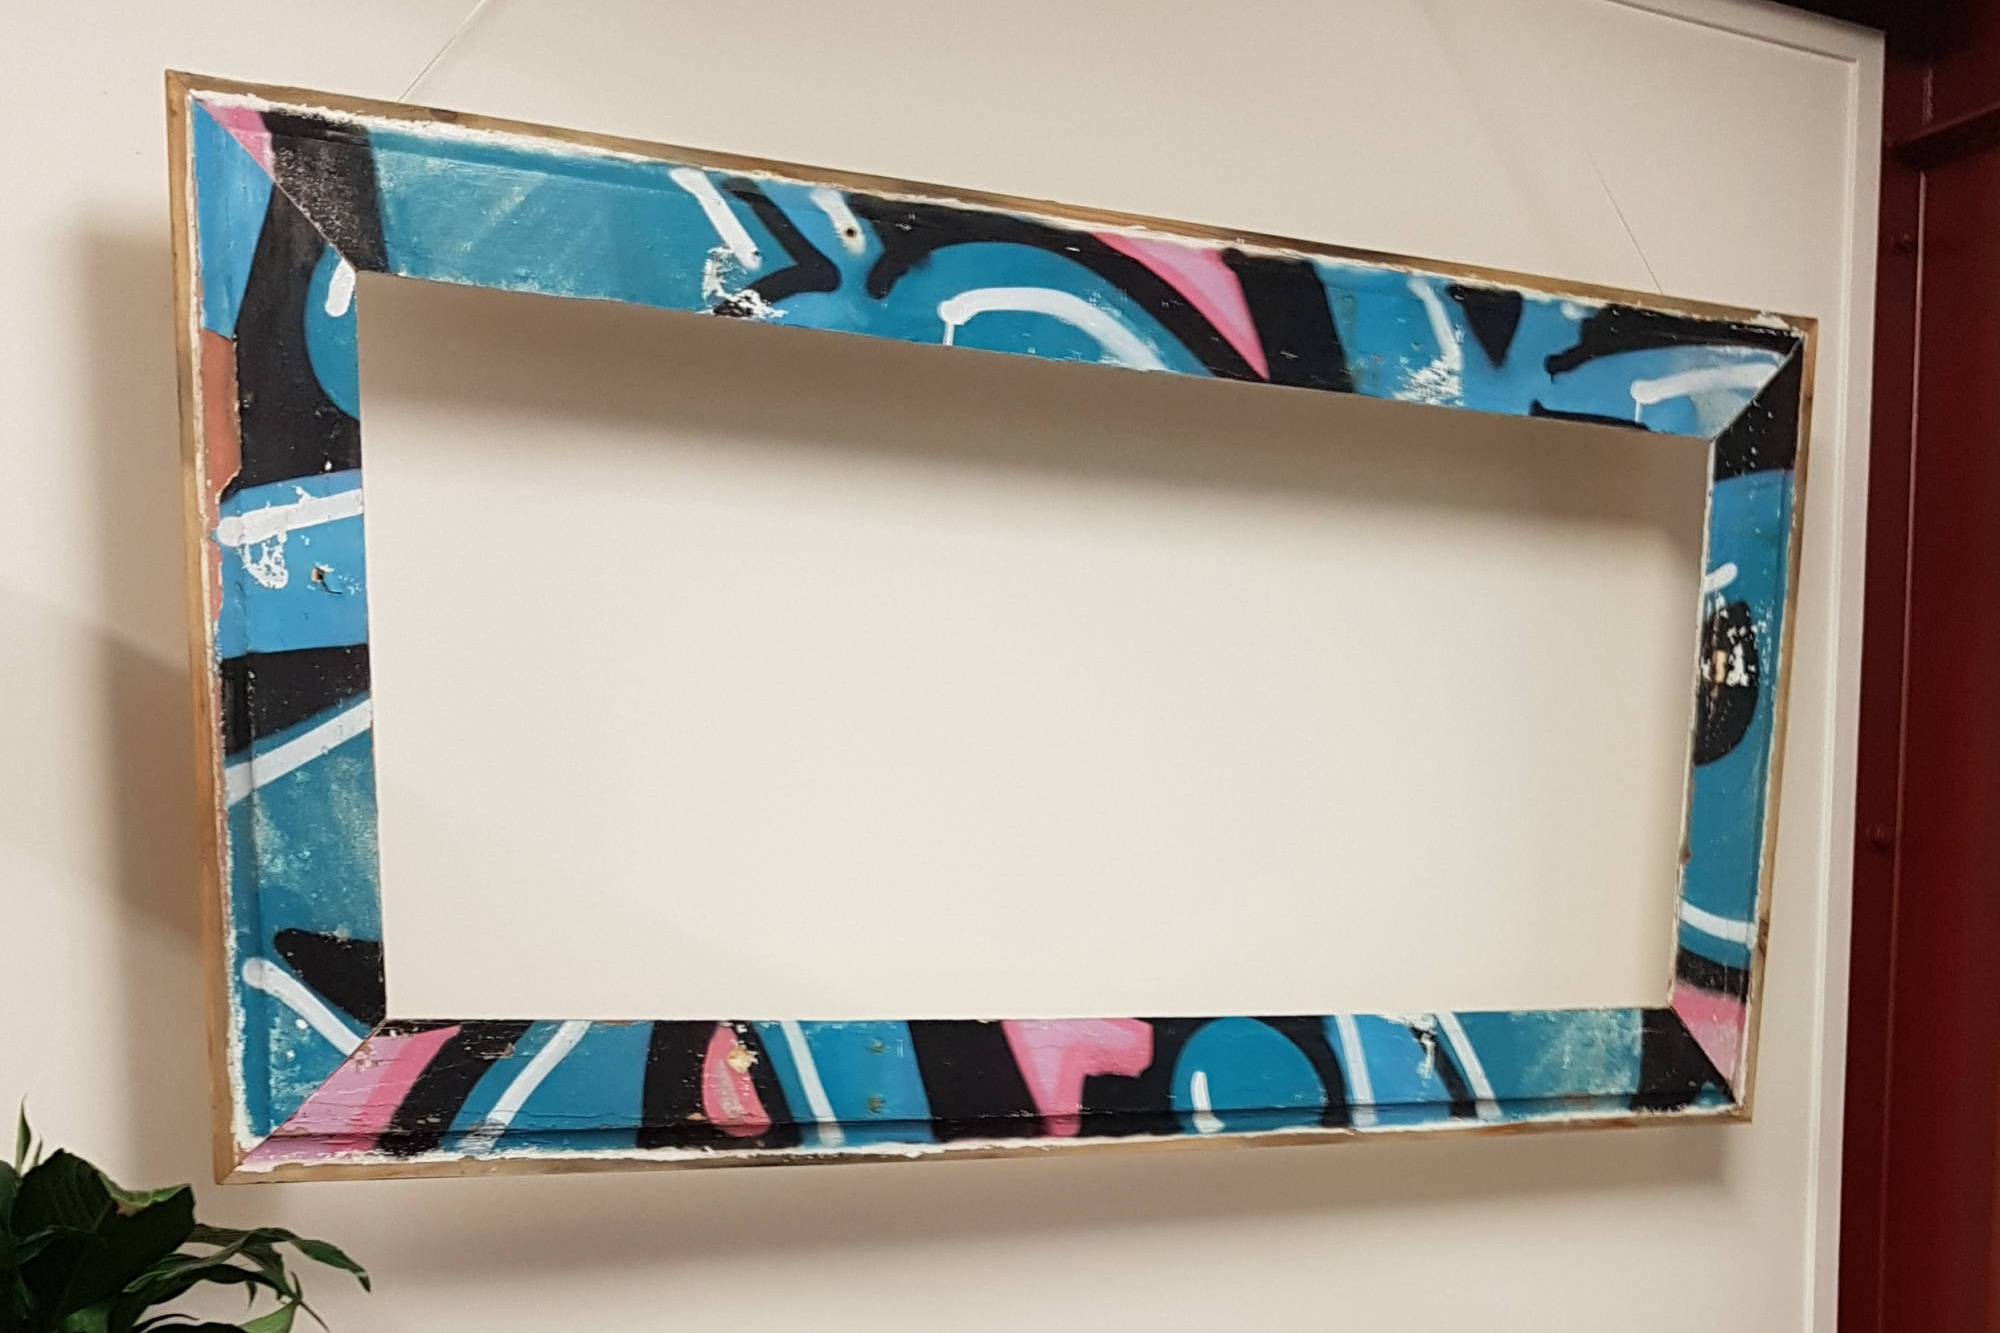 Large upcycled graffiti weatherboard frame (can be fitted with mirror/artwork/pinboard) Dimensions: 1720mm x 800mm. Price: $400 with mirror/$300 frame only